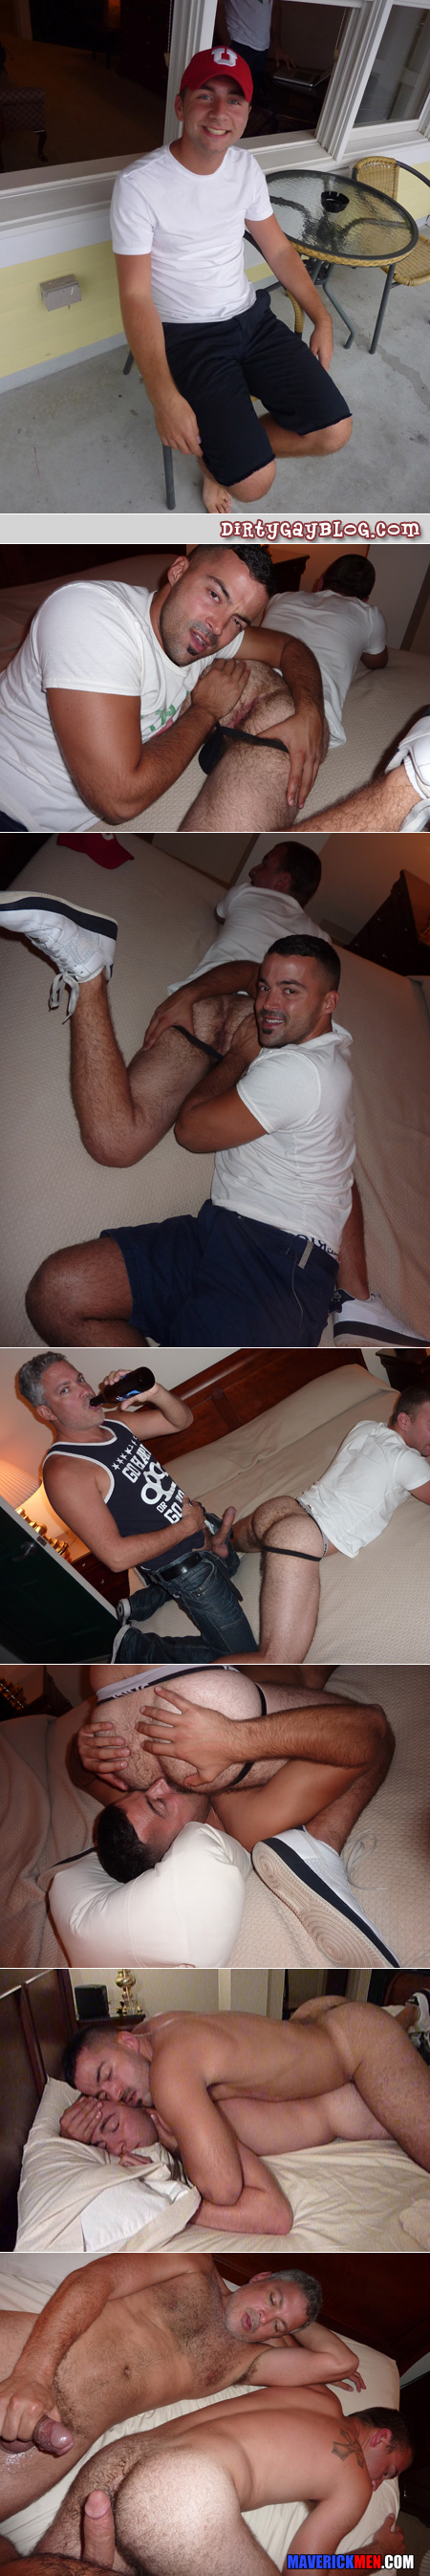 Hairy, mature gay couple pick up a hairy young guy on vacation and have a three-way with him in their hotel room.